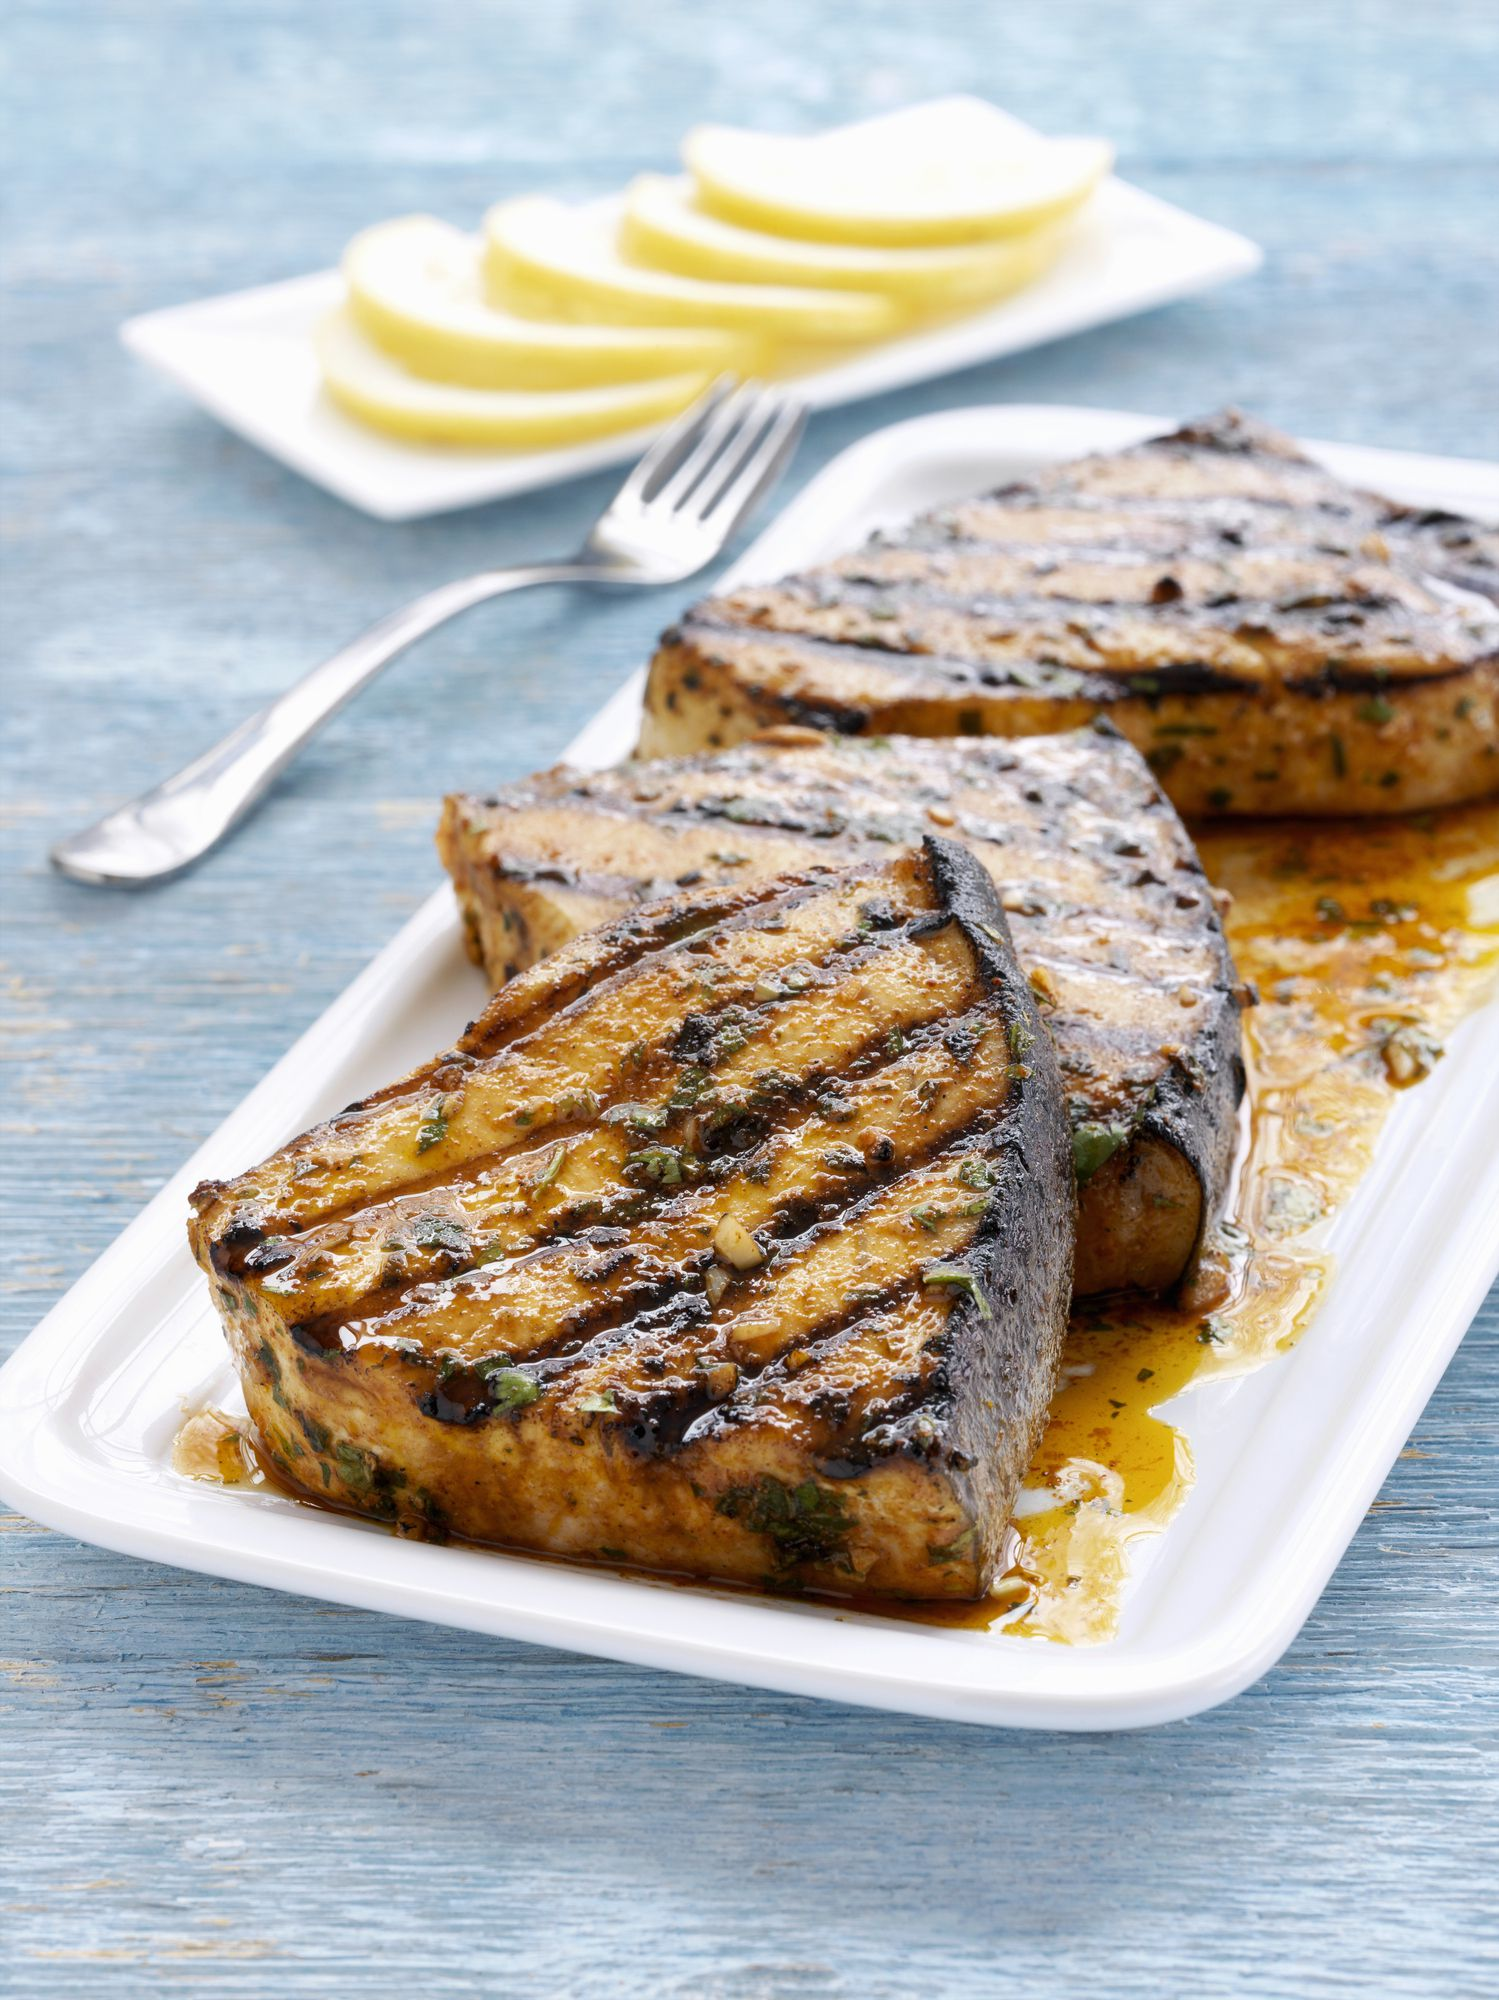 Grilled Swordfish Steak Recipe